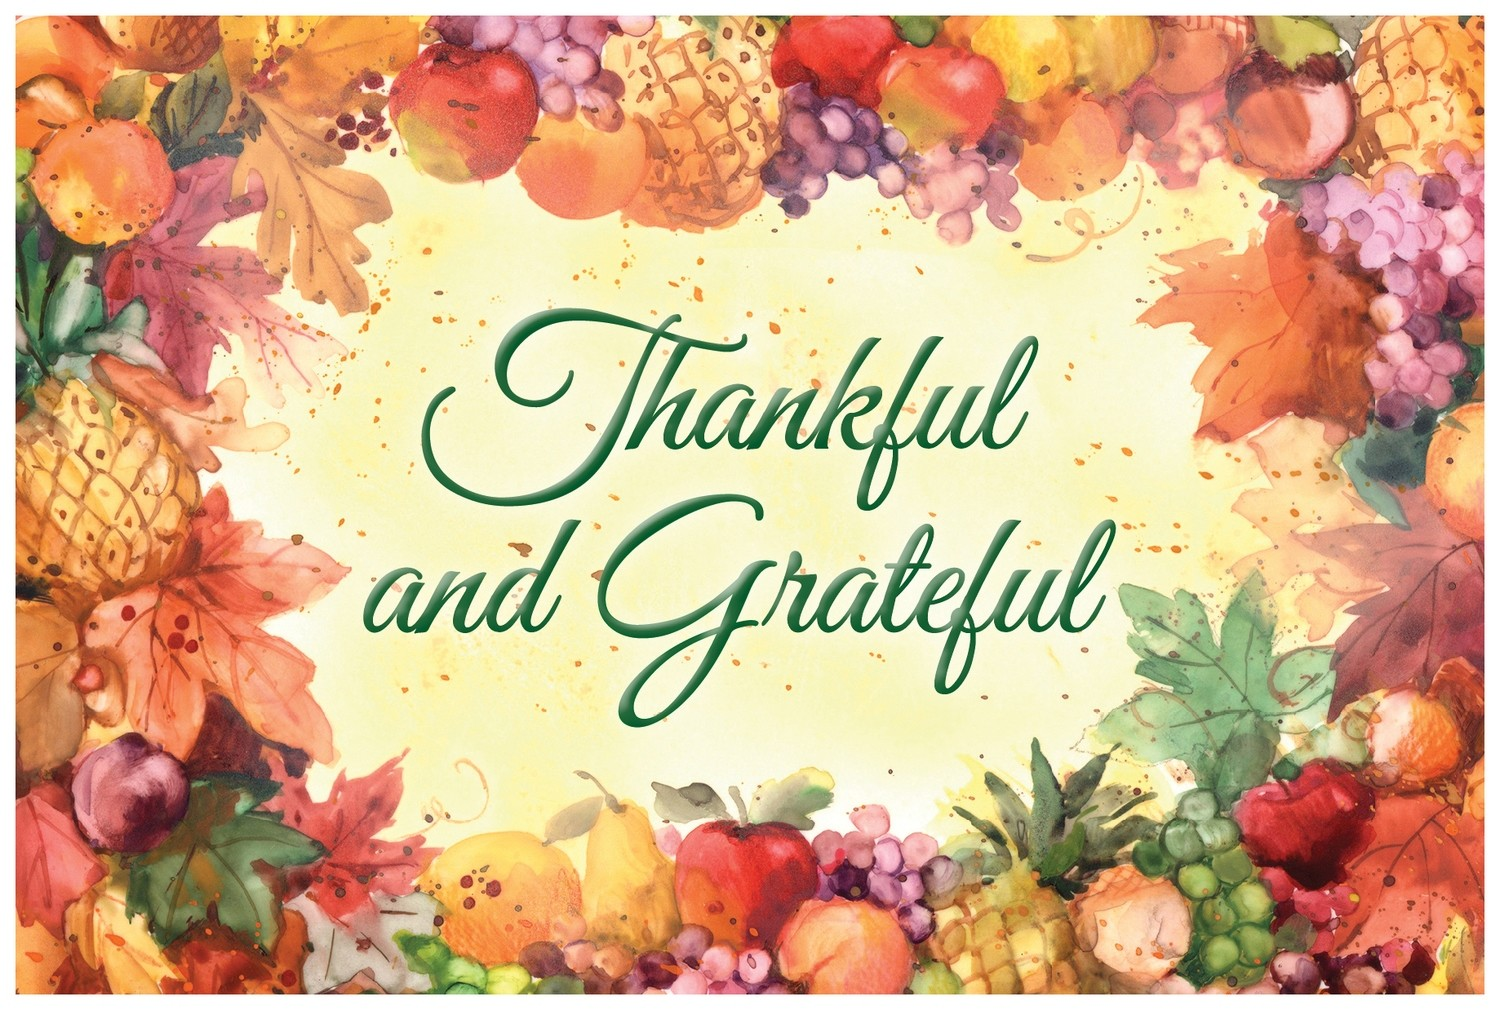 FRS 956 / 7973 Thanksgiving Card